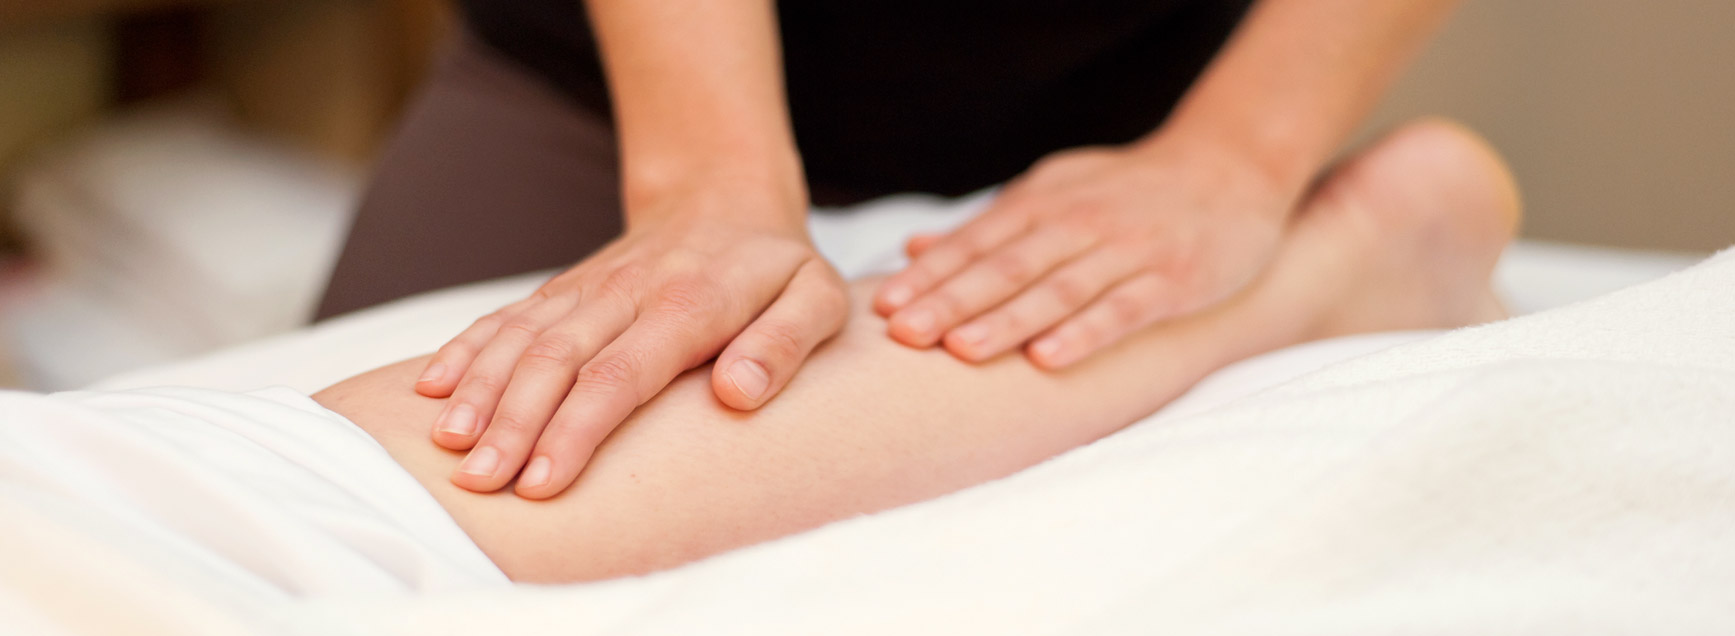 Massage Therapy – Promoting healing, relieving pain and stiffness